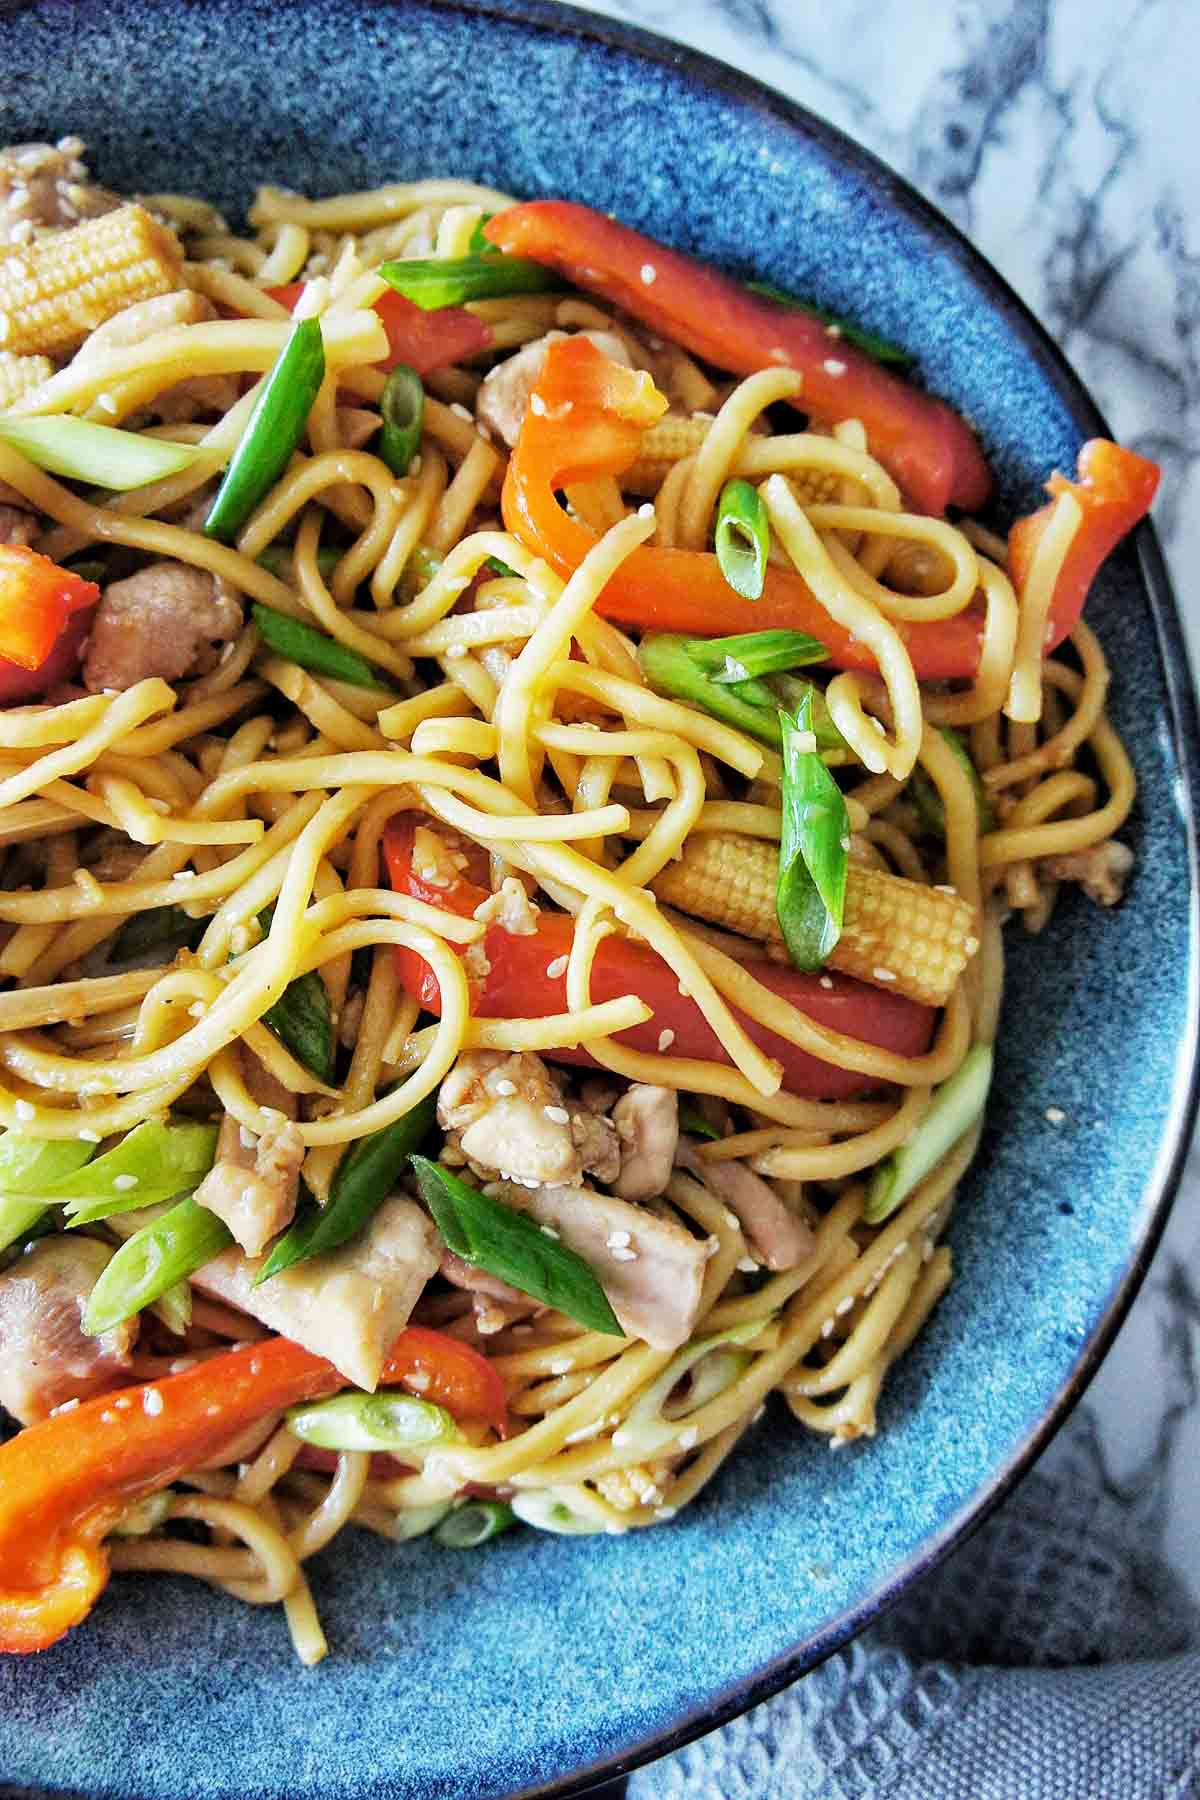 Chicken Noodle Stir Fry with capsicum and corn spears in a blue bowl